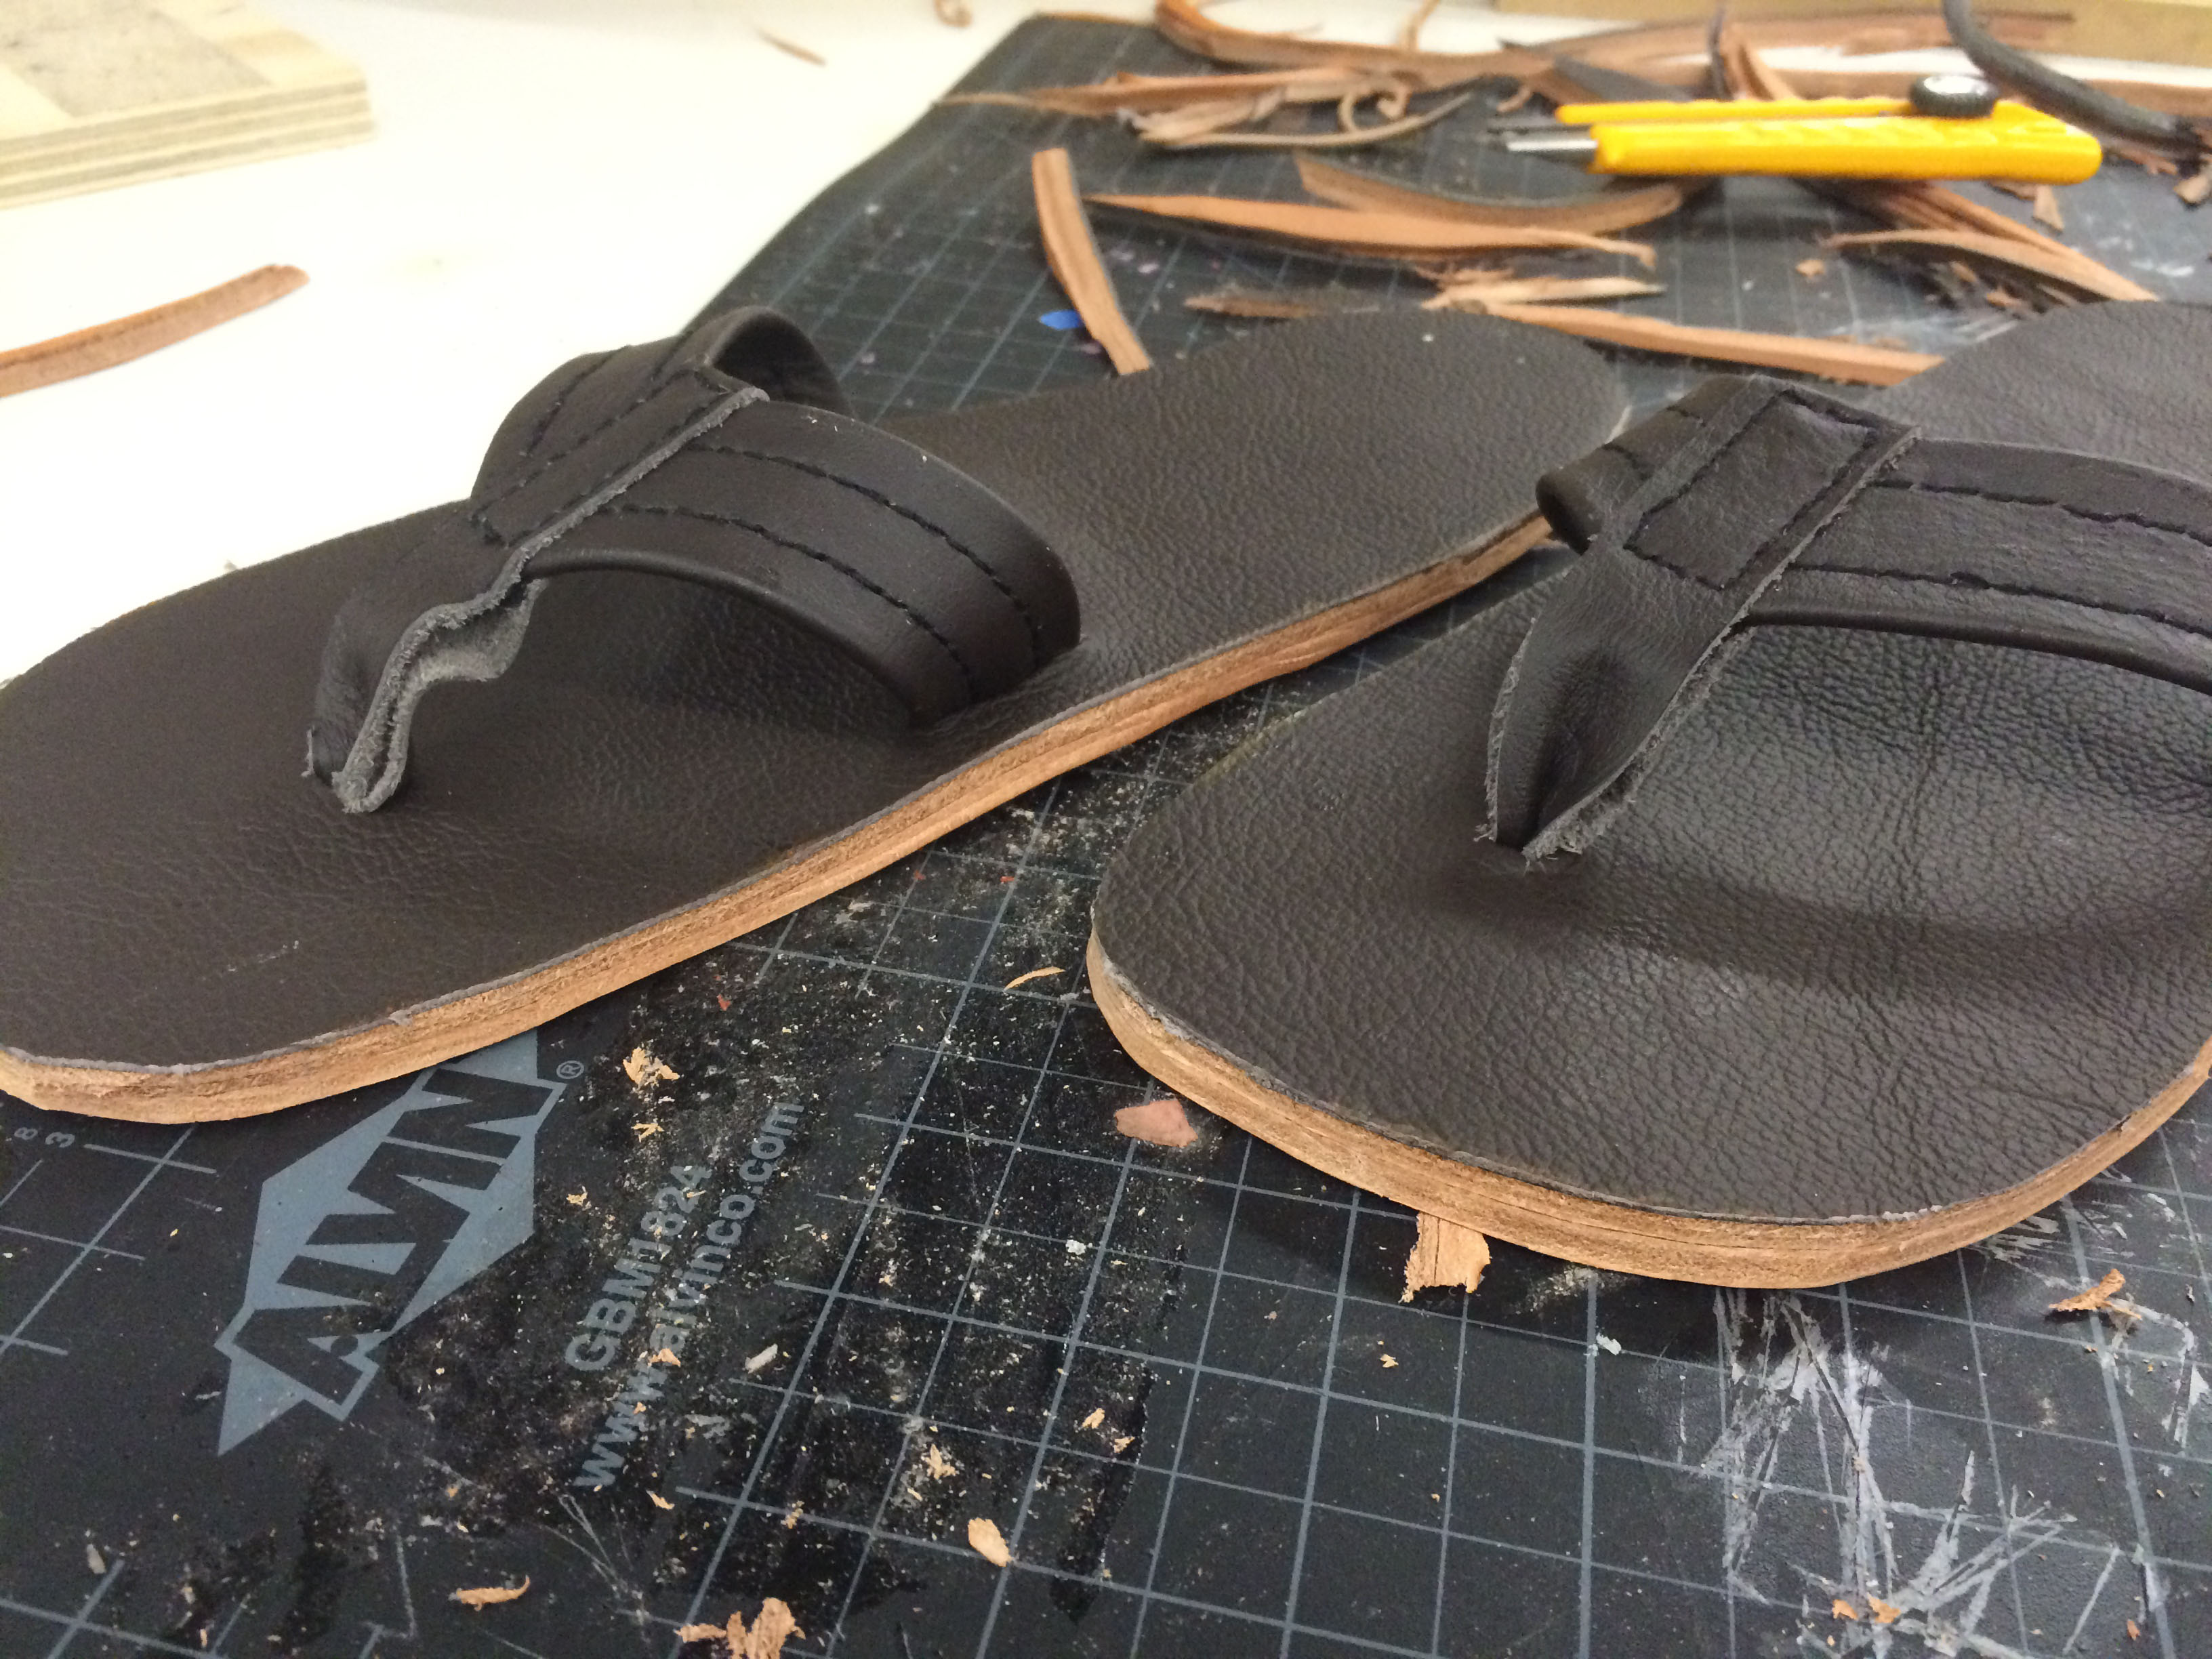 Leather sandals design home made DIY make how to craft hands on learning own sew stitch cut